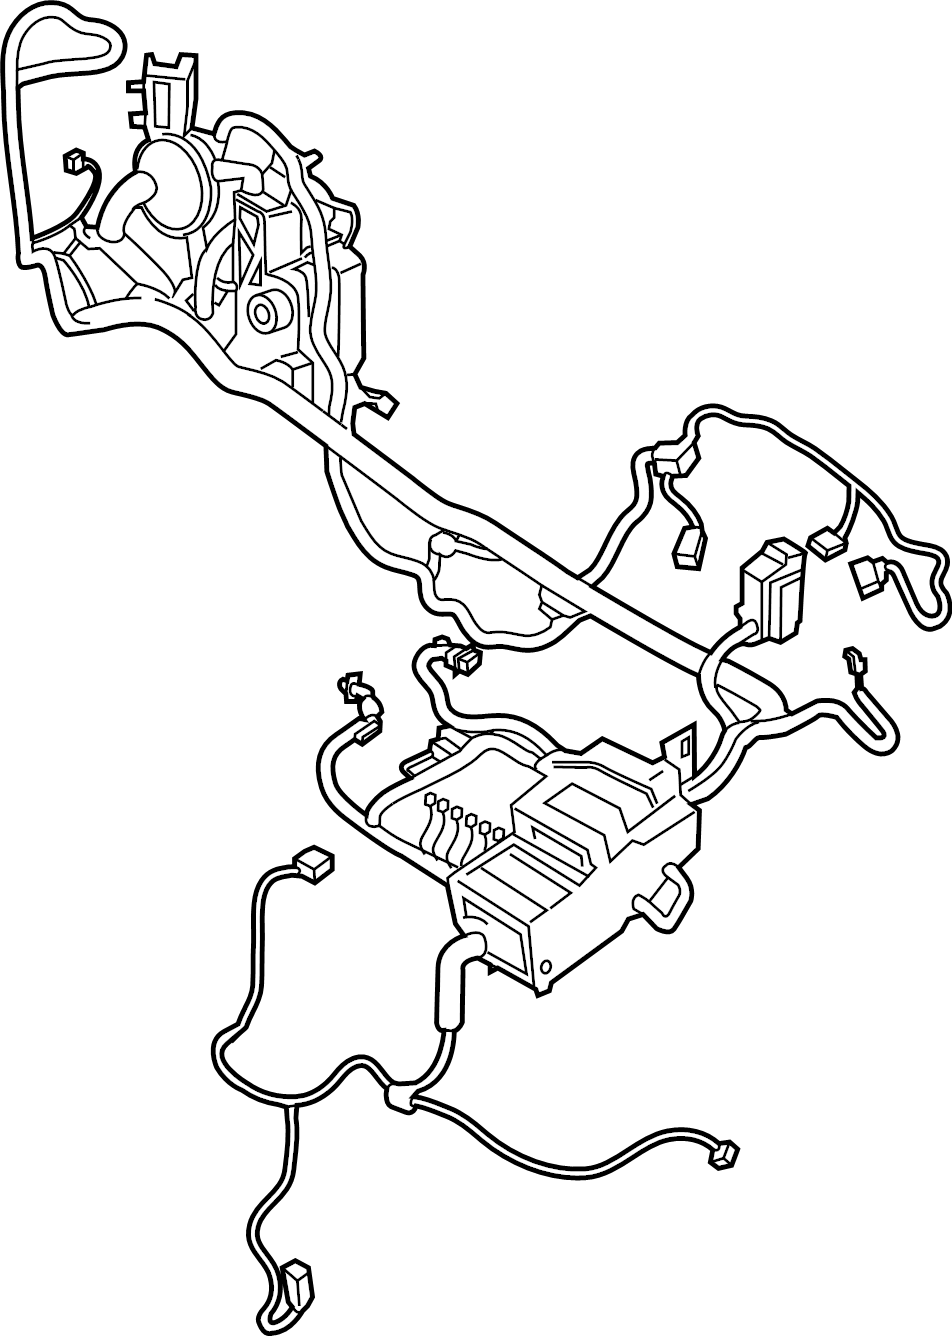 Ford Transit Connect Wire harness. WIRING ASSEMBLY. Front